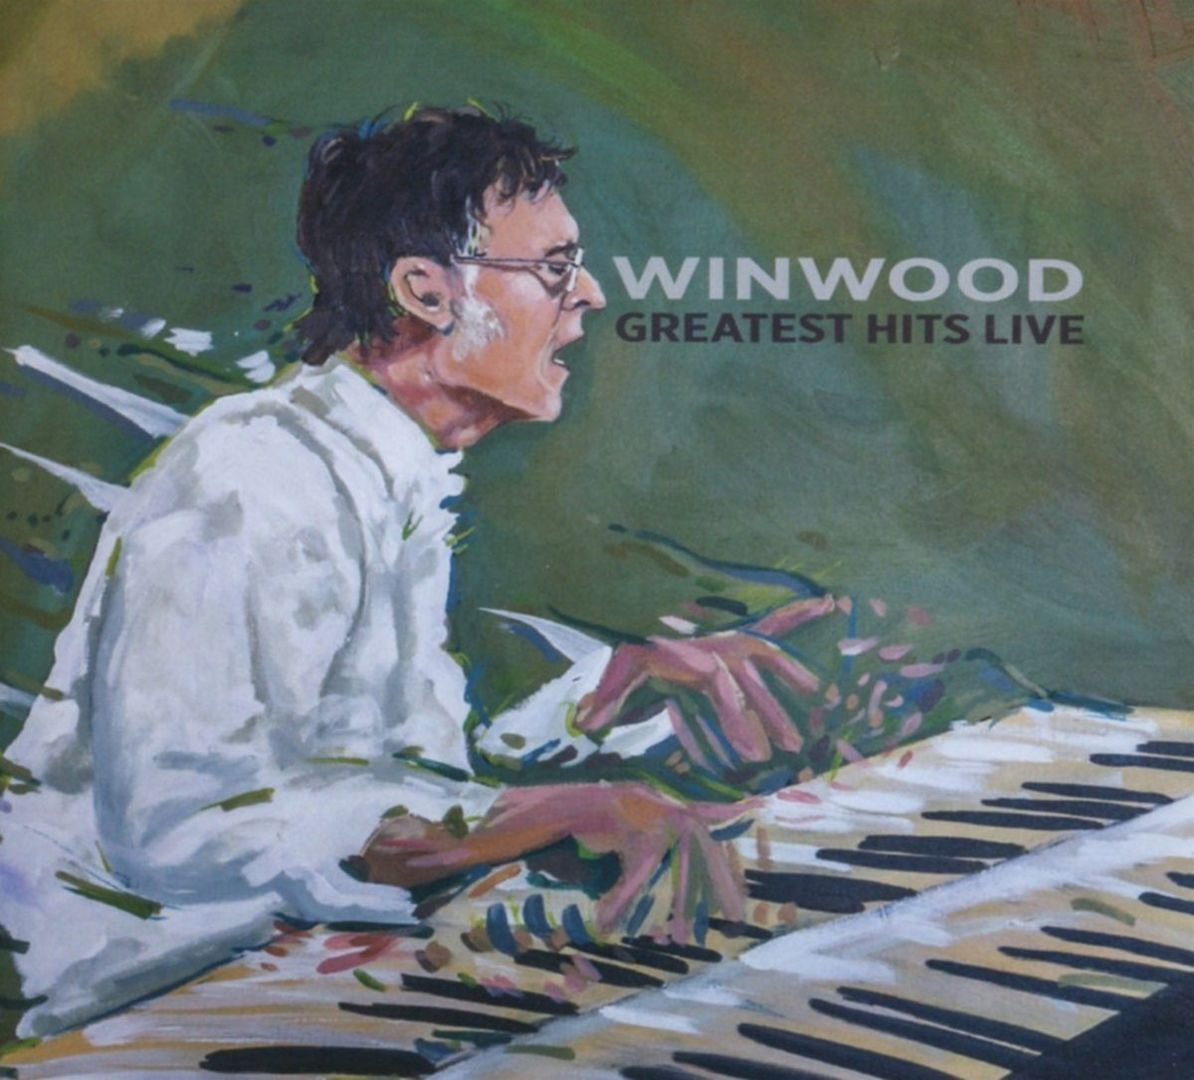 steve winwood greatest